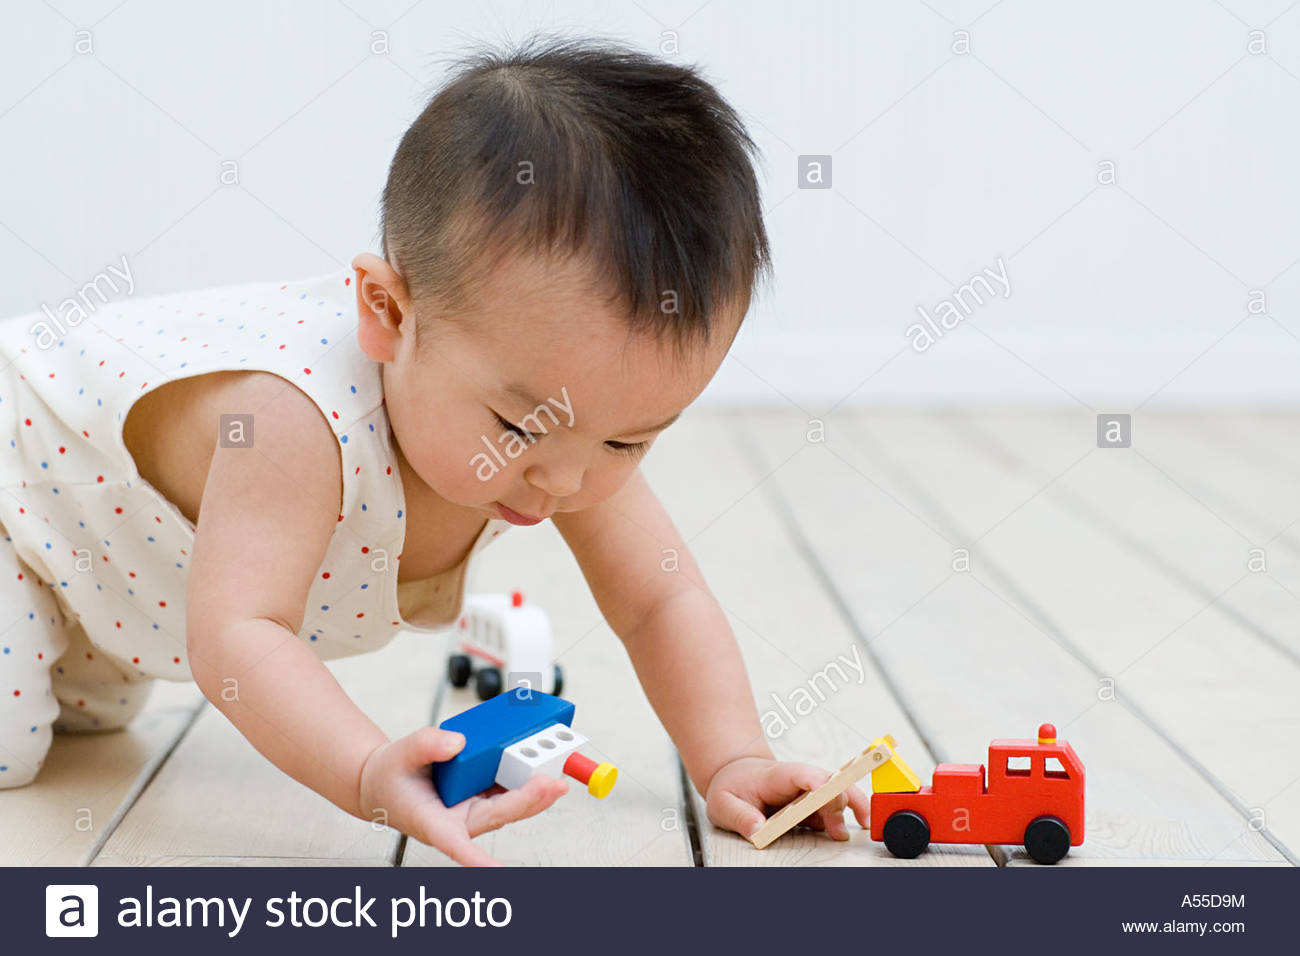 Asian boy playing with toys - Stock Image